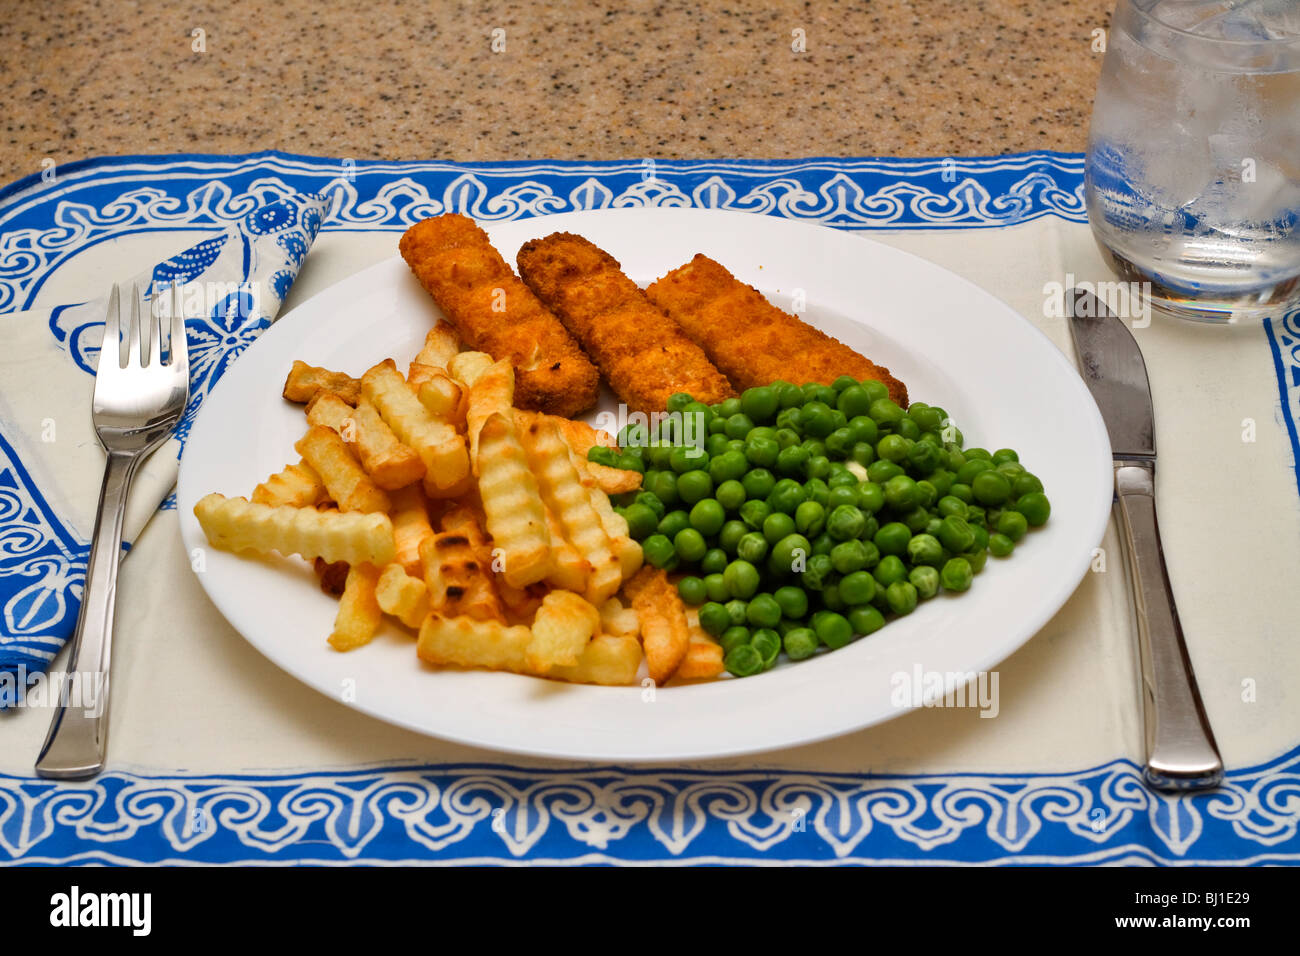 A light meal of fish sticks, chips and peas - Stock Image